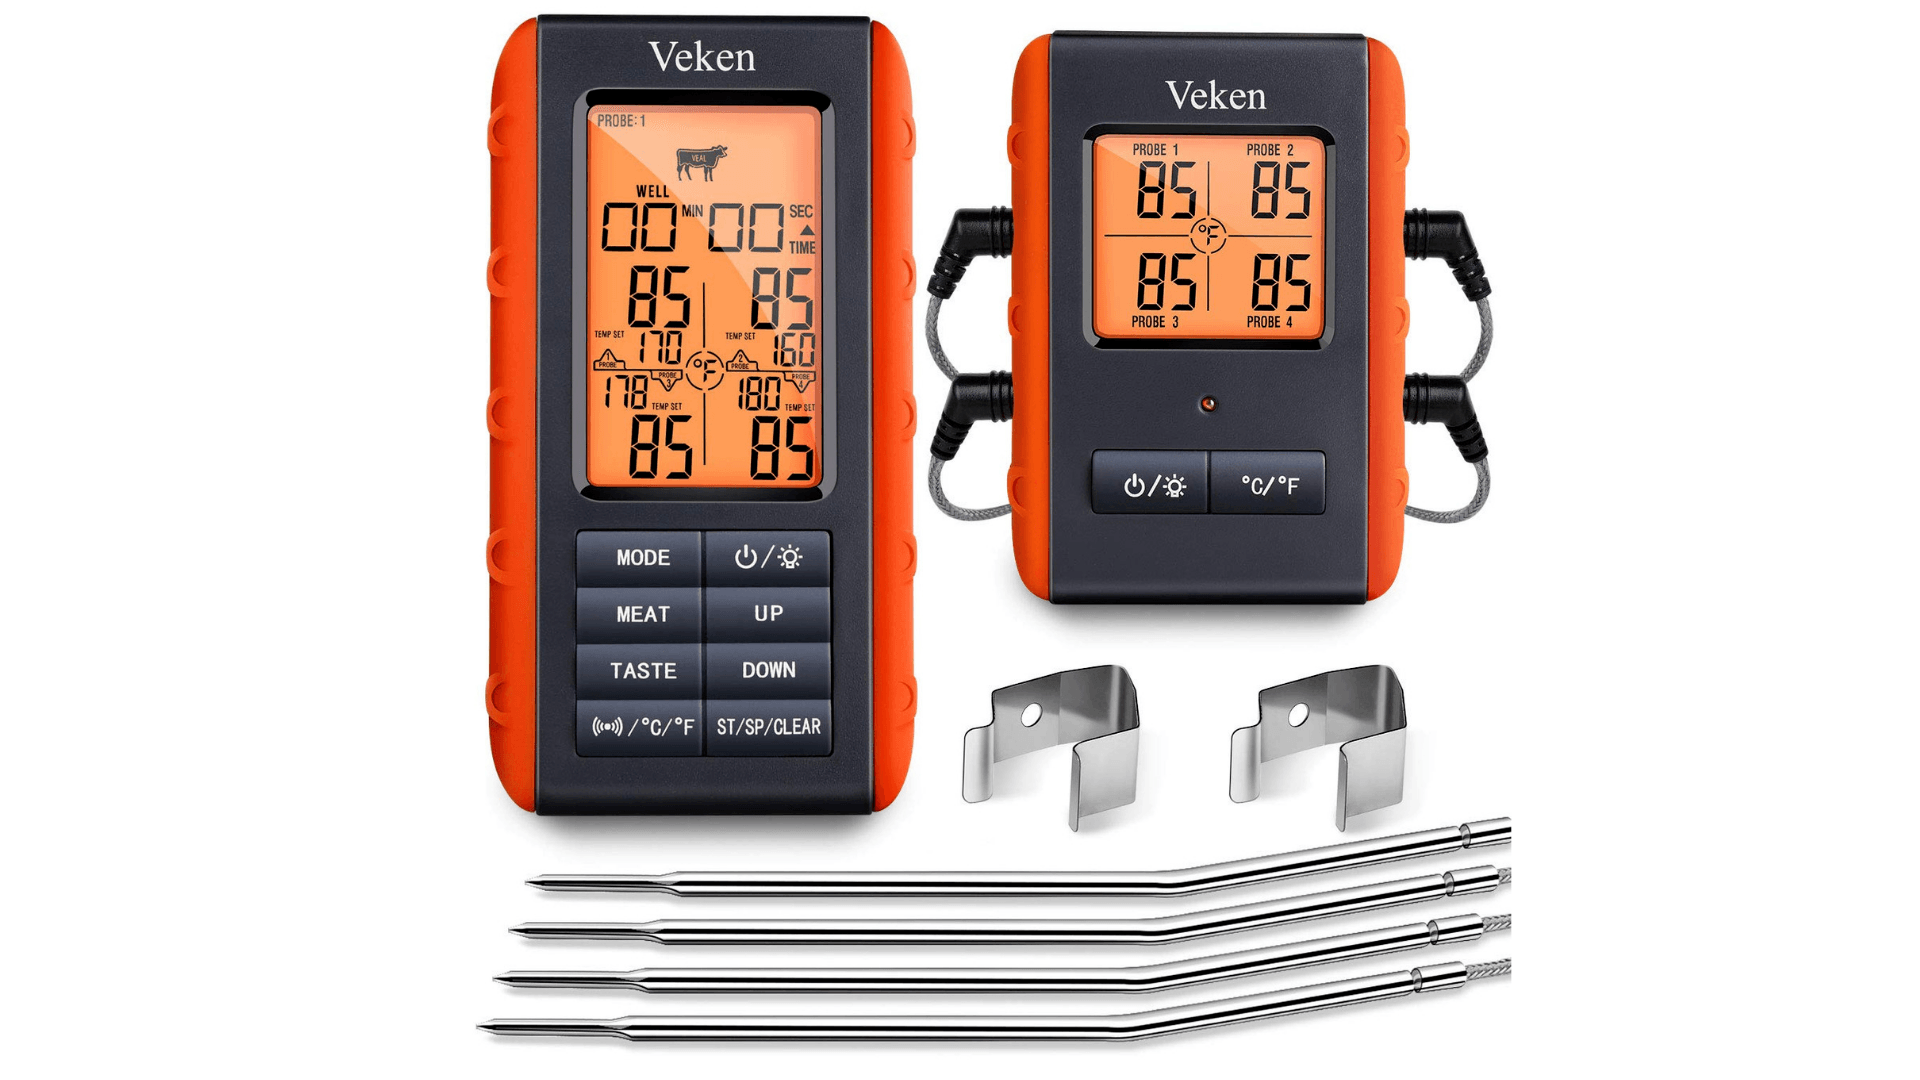 Product Image of Veken BBQ Wireless Meat Grill Thermometer